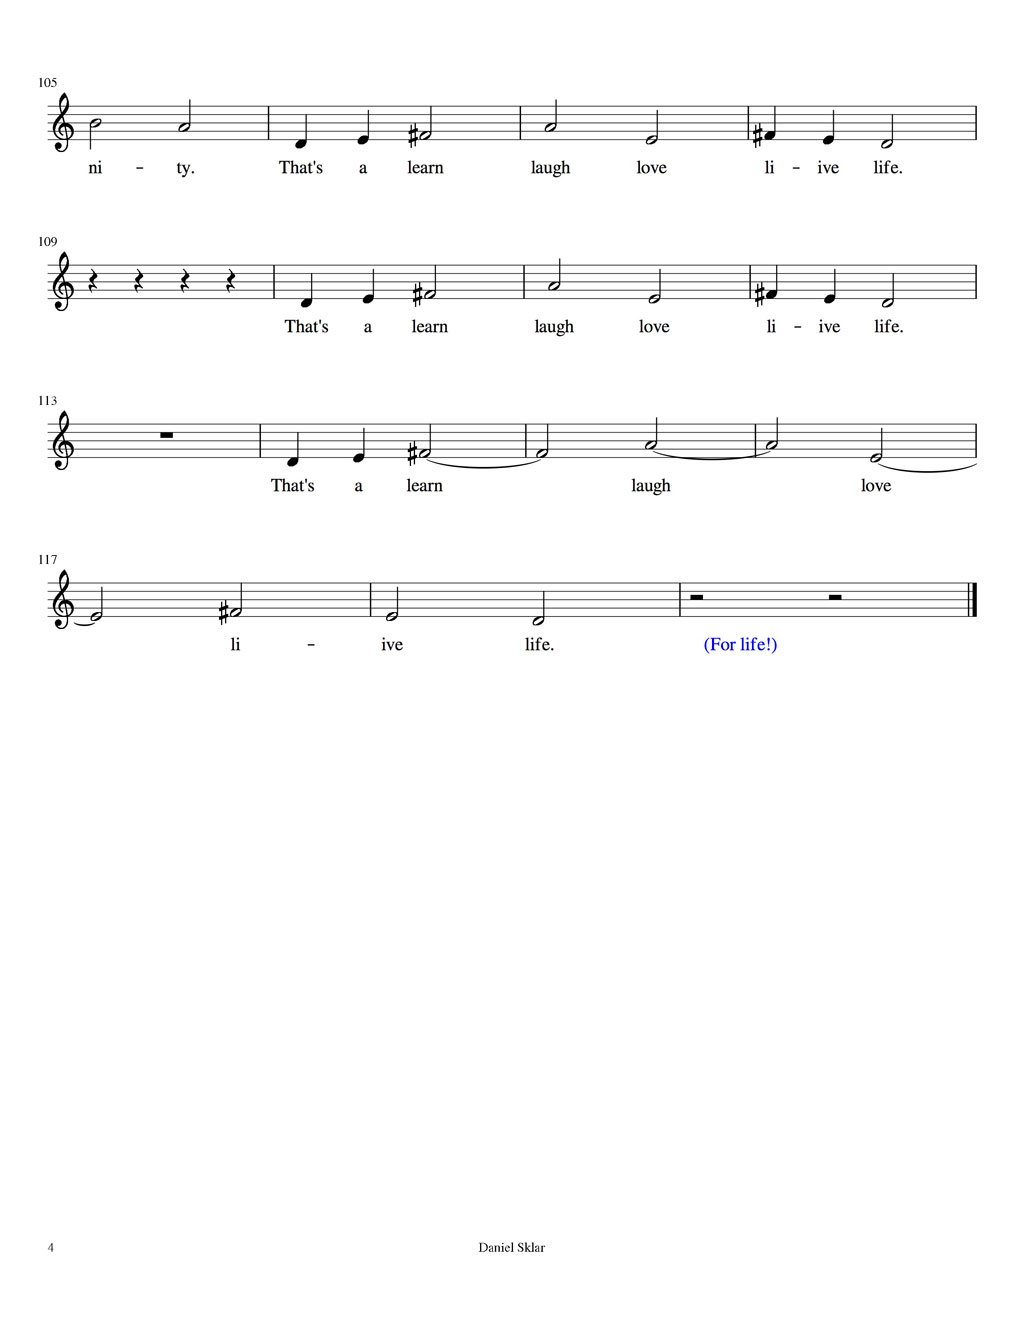 Song for LYF music score lyrics page 4 LRN LAF LUV LIV LYF Learn Laugh Love Live Life